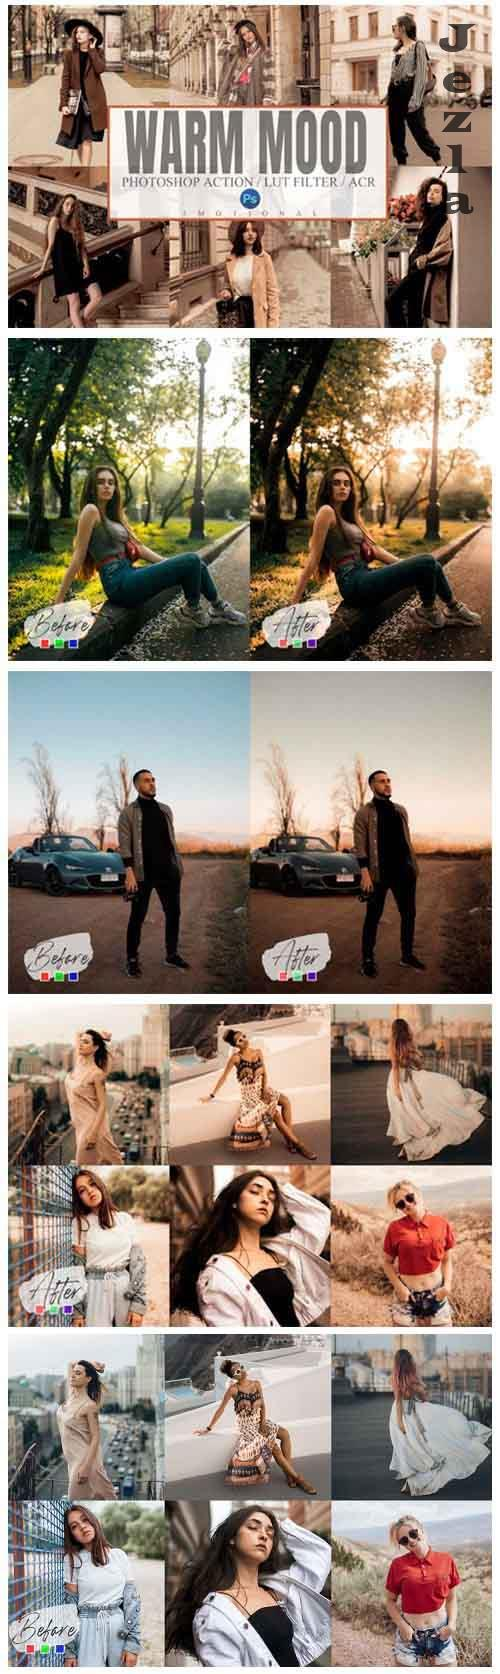 6 Warm Mood Photoshop Action, ACR, LUT Filter Presets - 945611